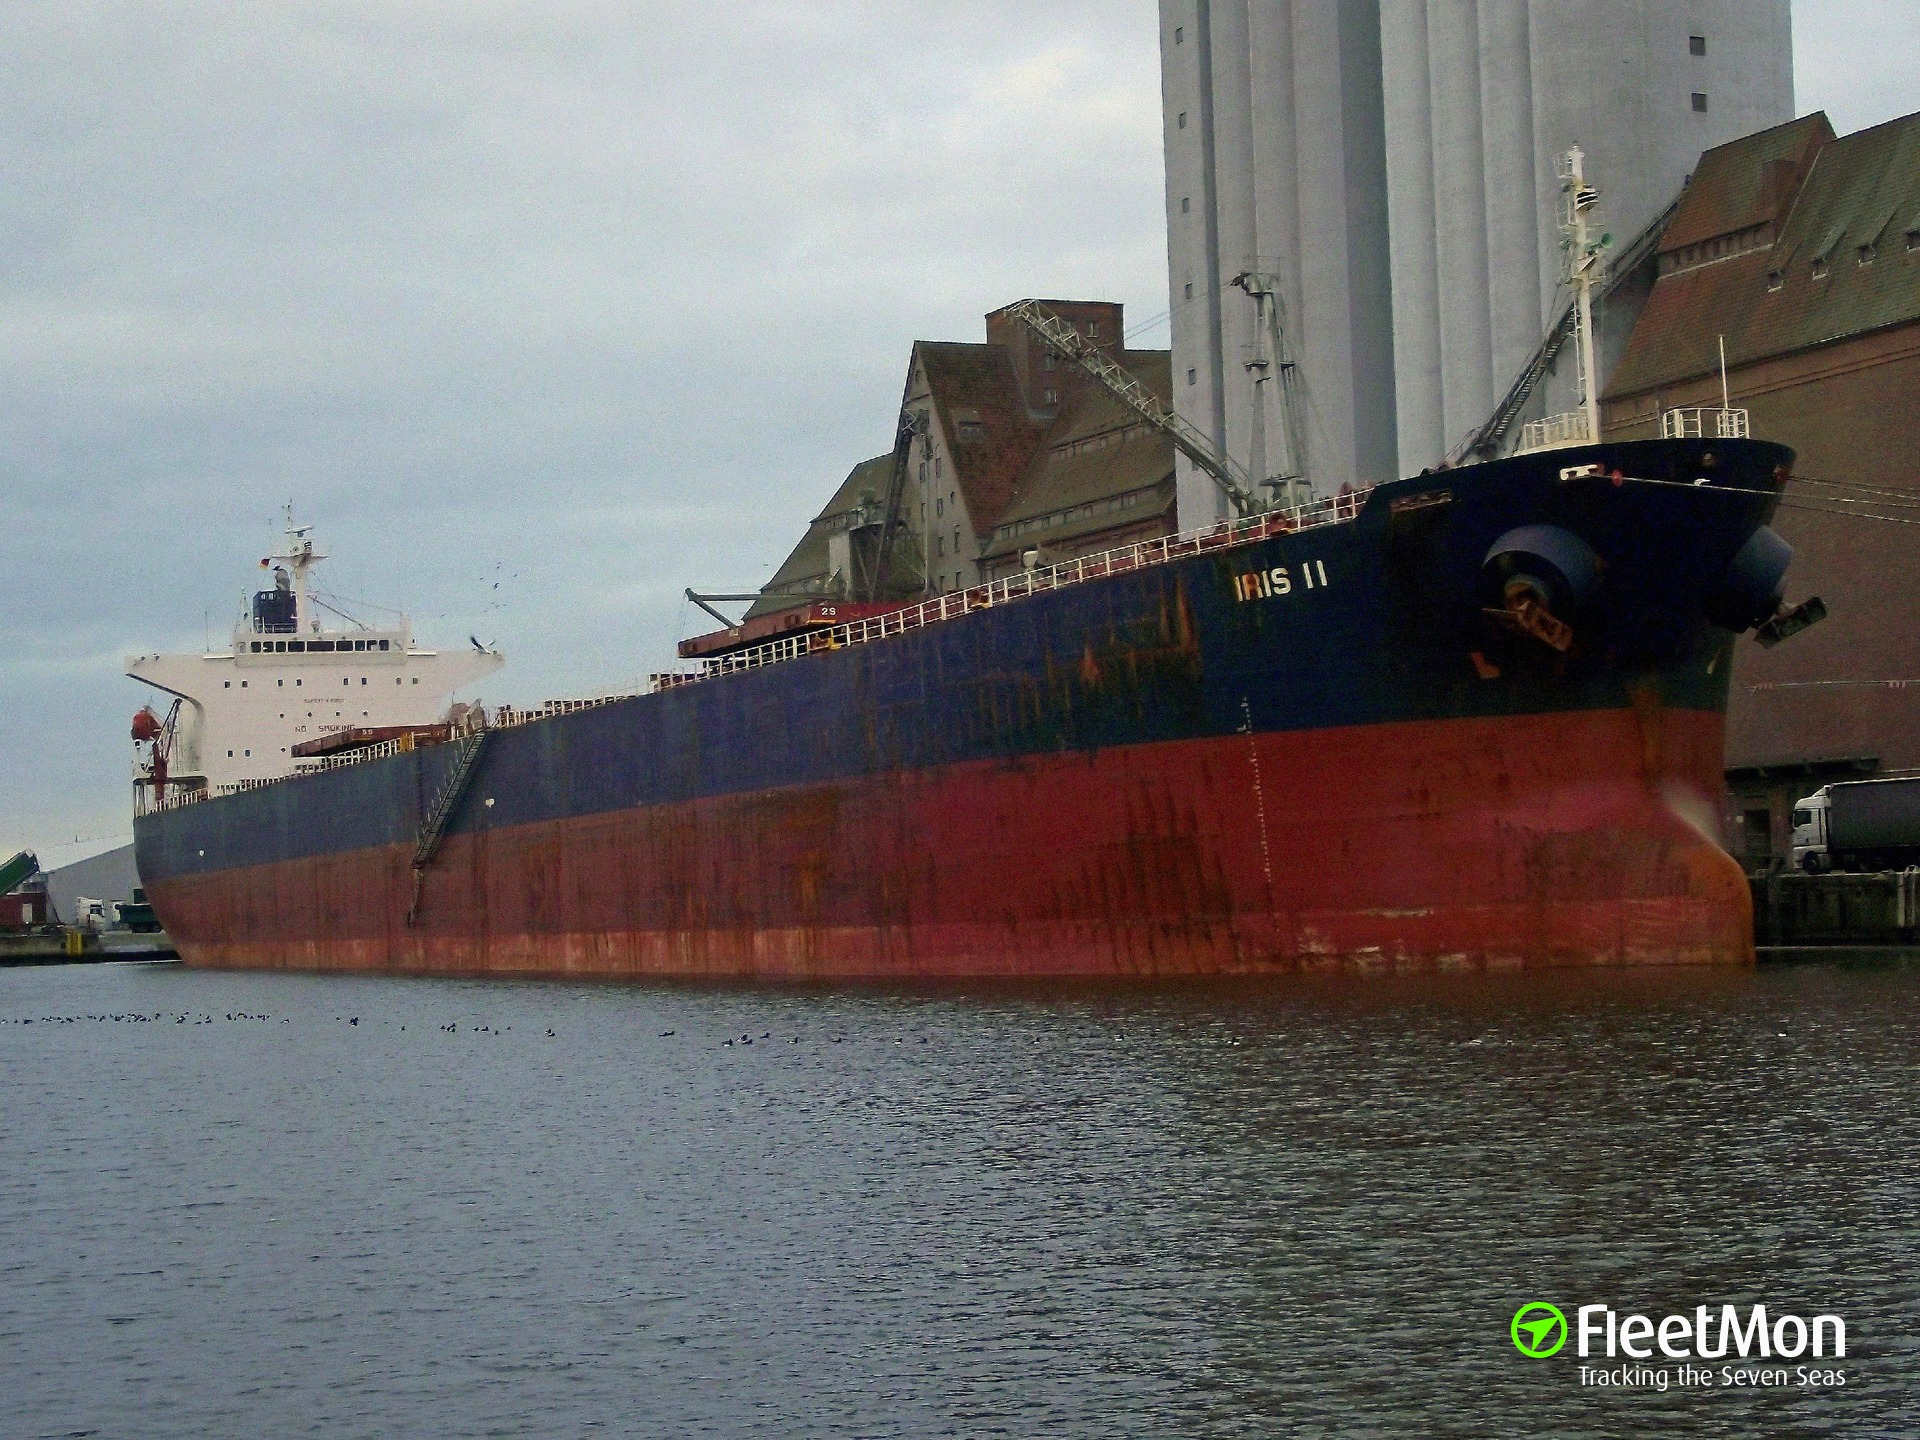 Disabled bulk carrier under tow, Indian ocean UPDATE